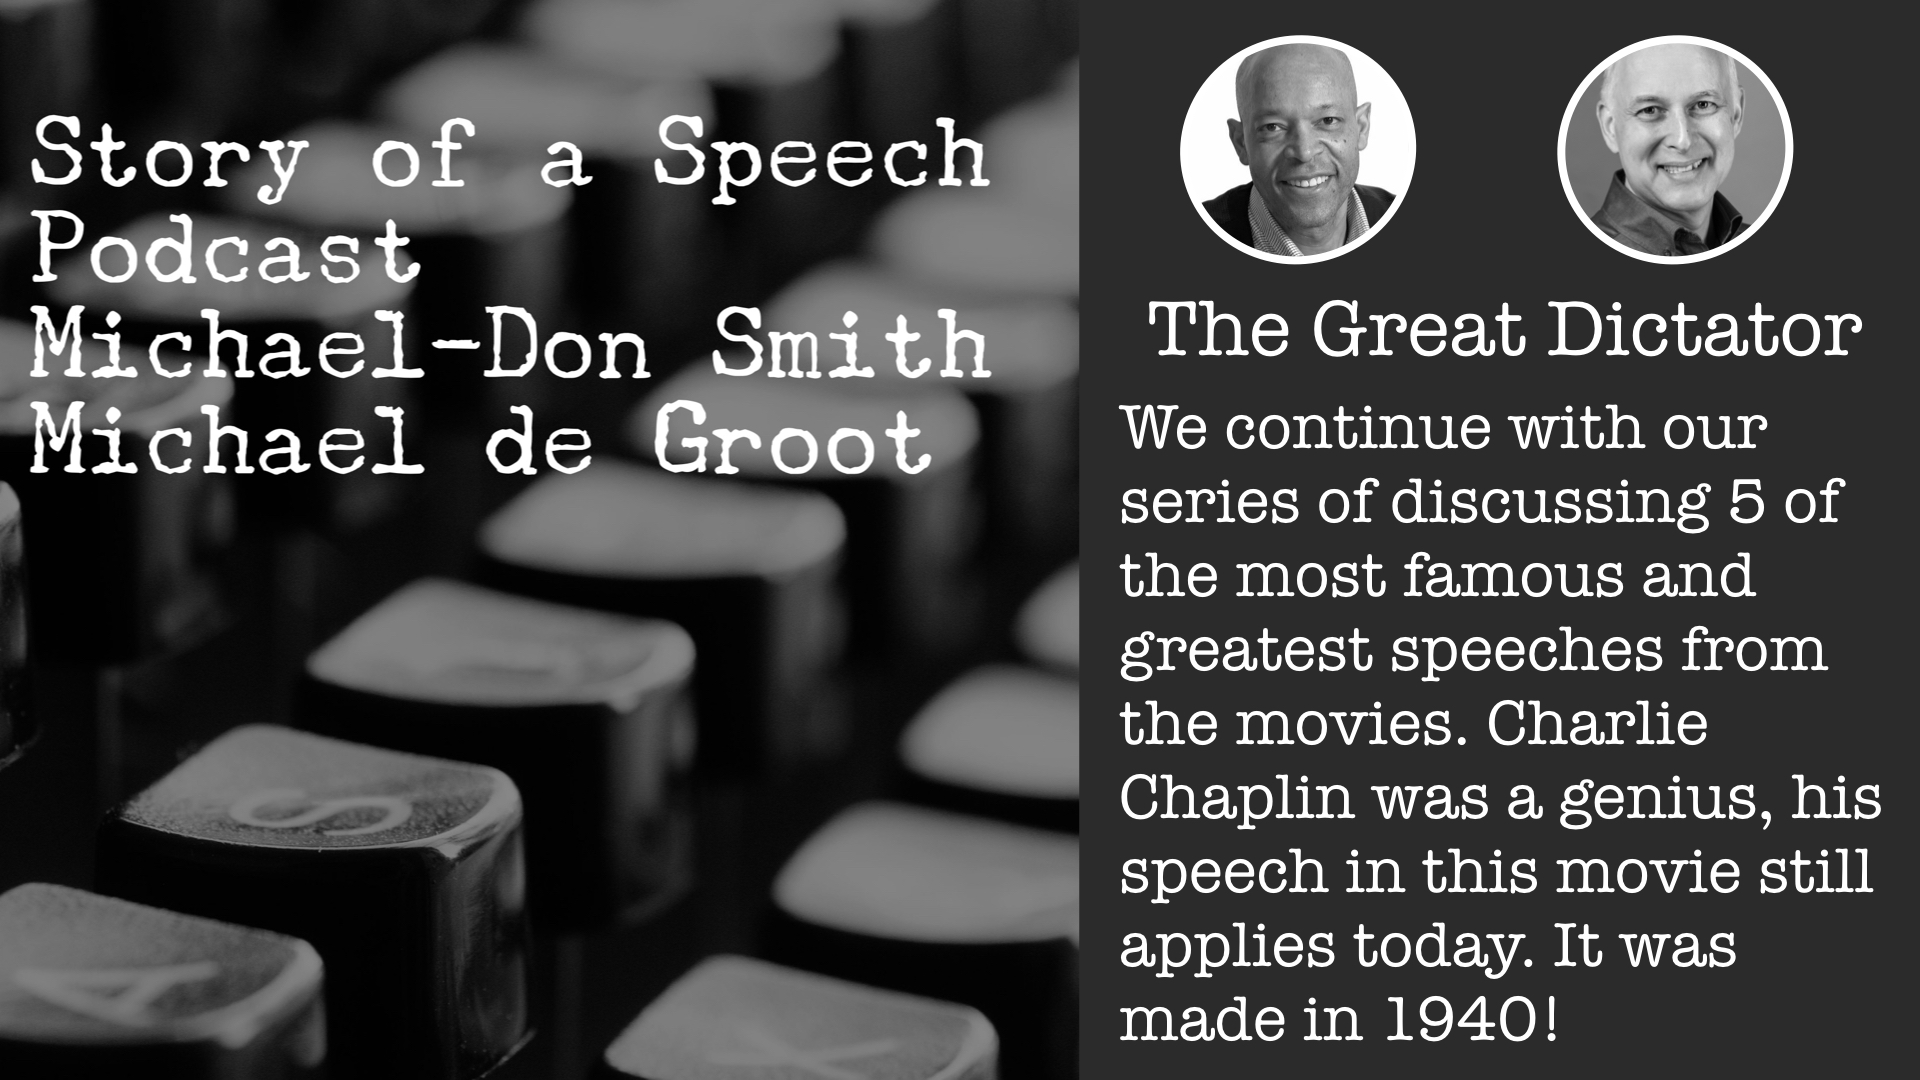 The Great Dictator - Story of a Speech Podcast.jpeg